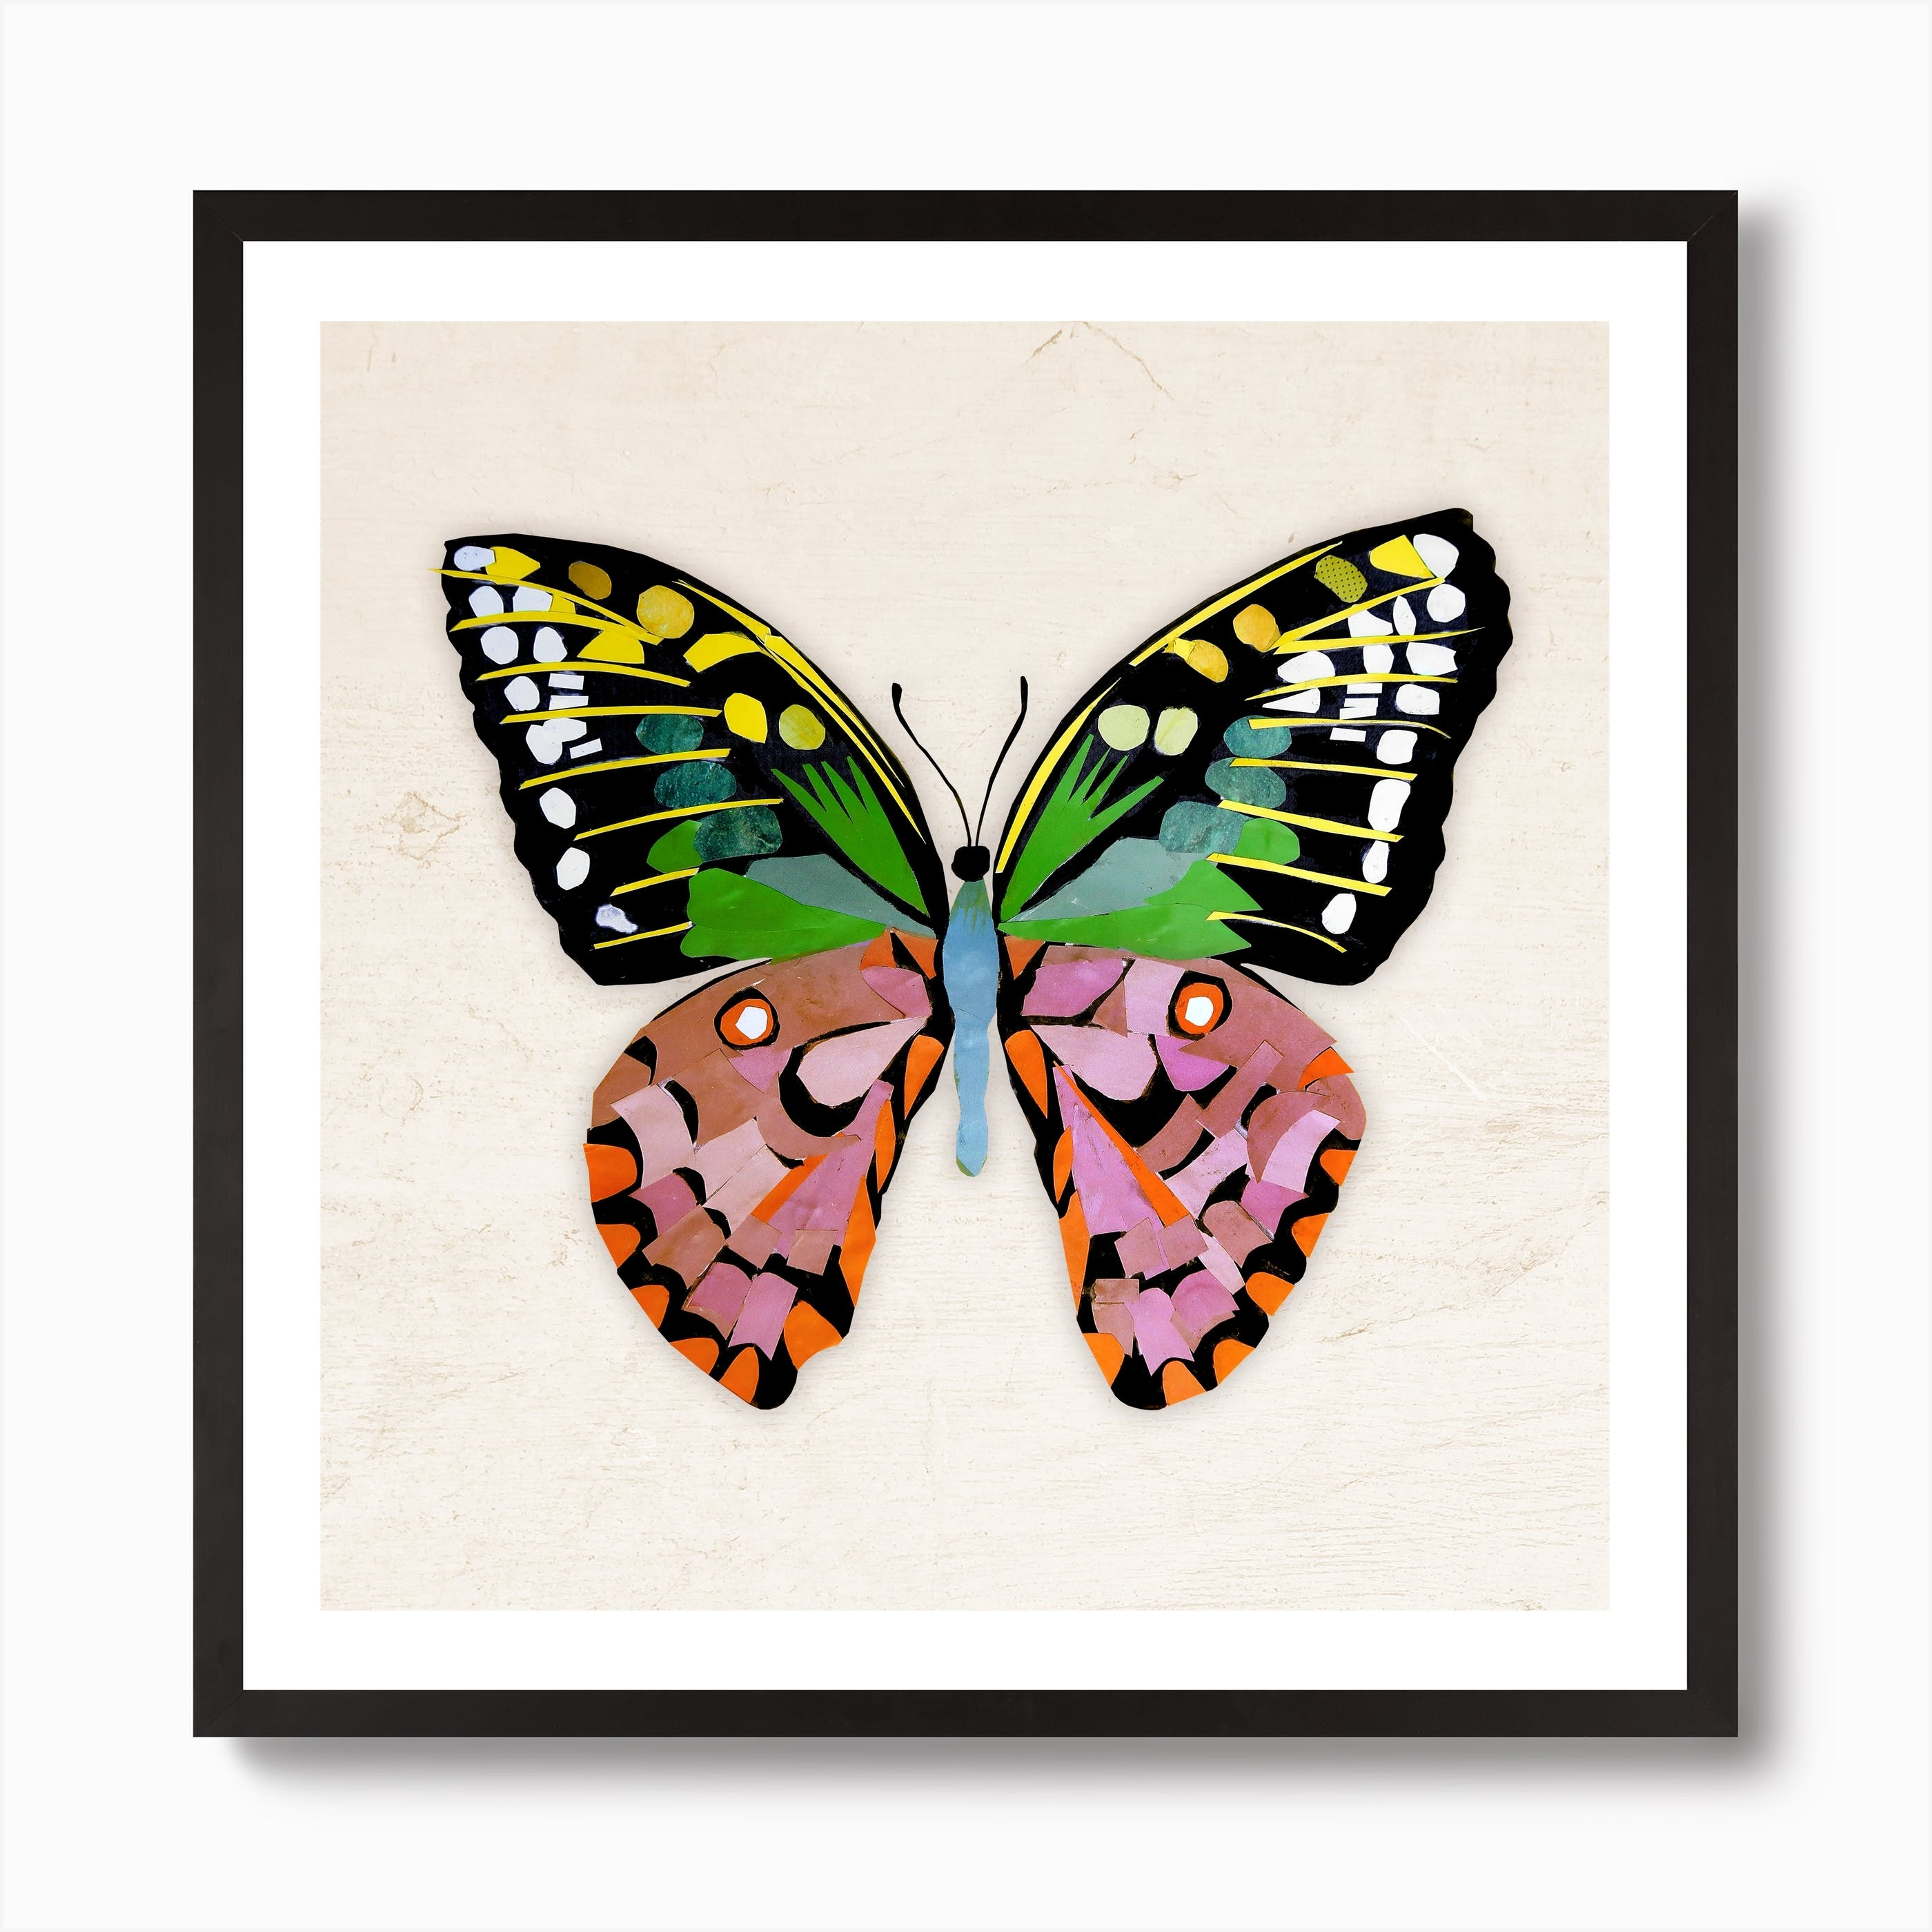 LOVE HEART BUTTERFLY ABSTRACT SQUARE CANVAS ART PRINT Various sizes